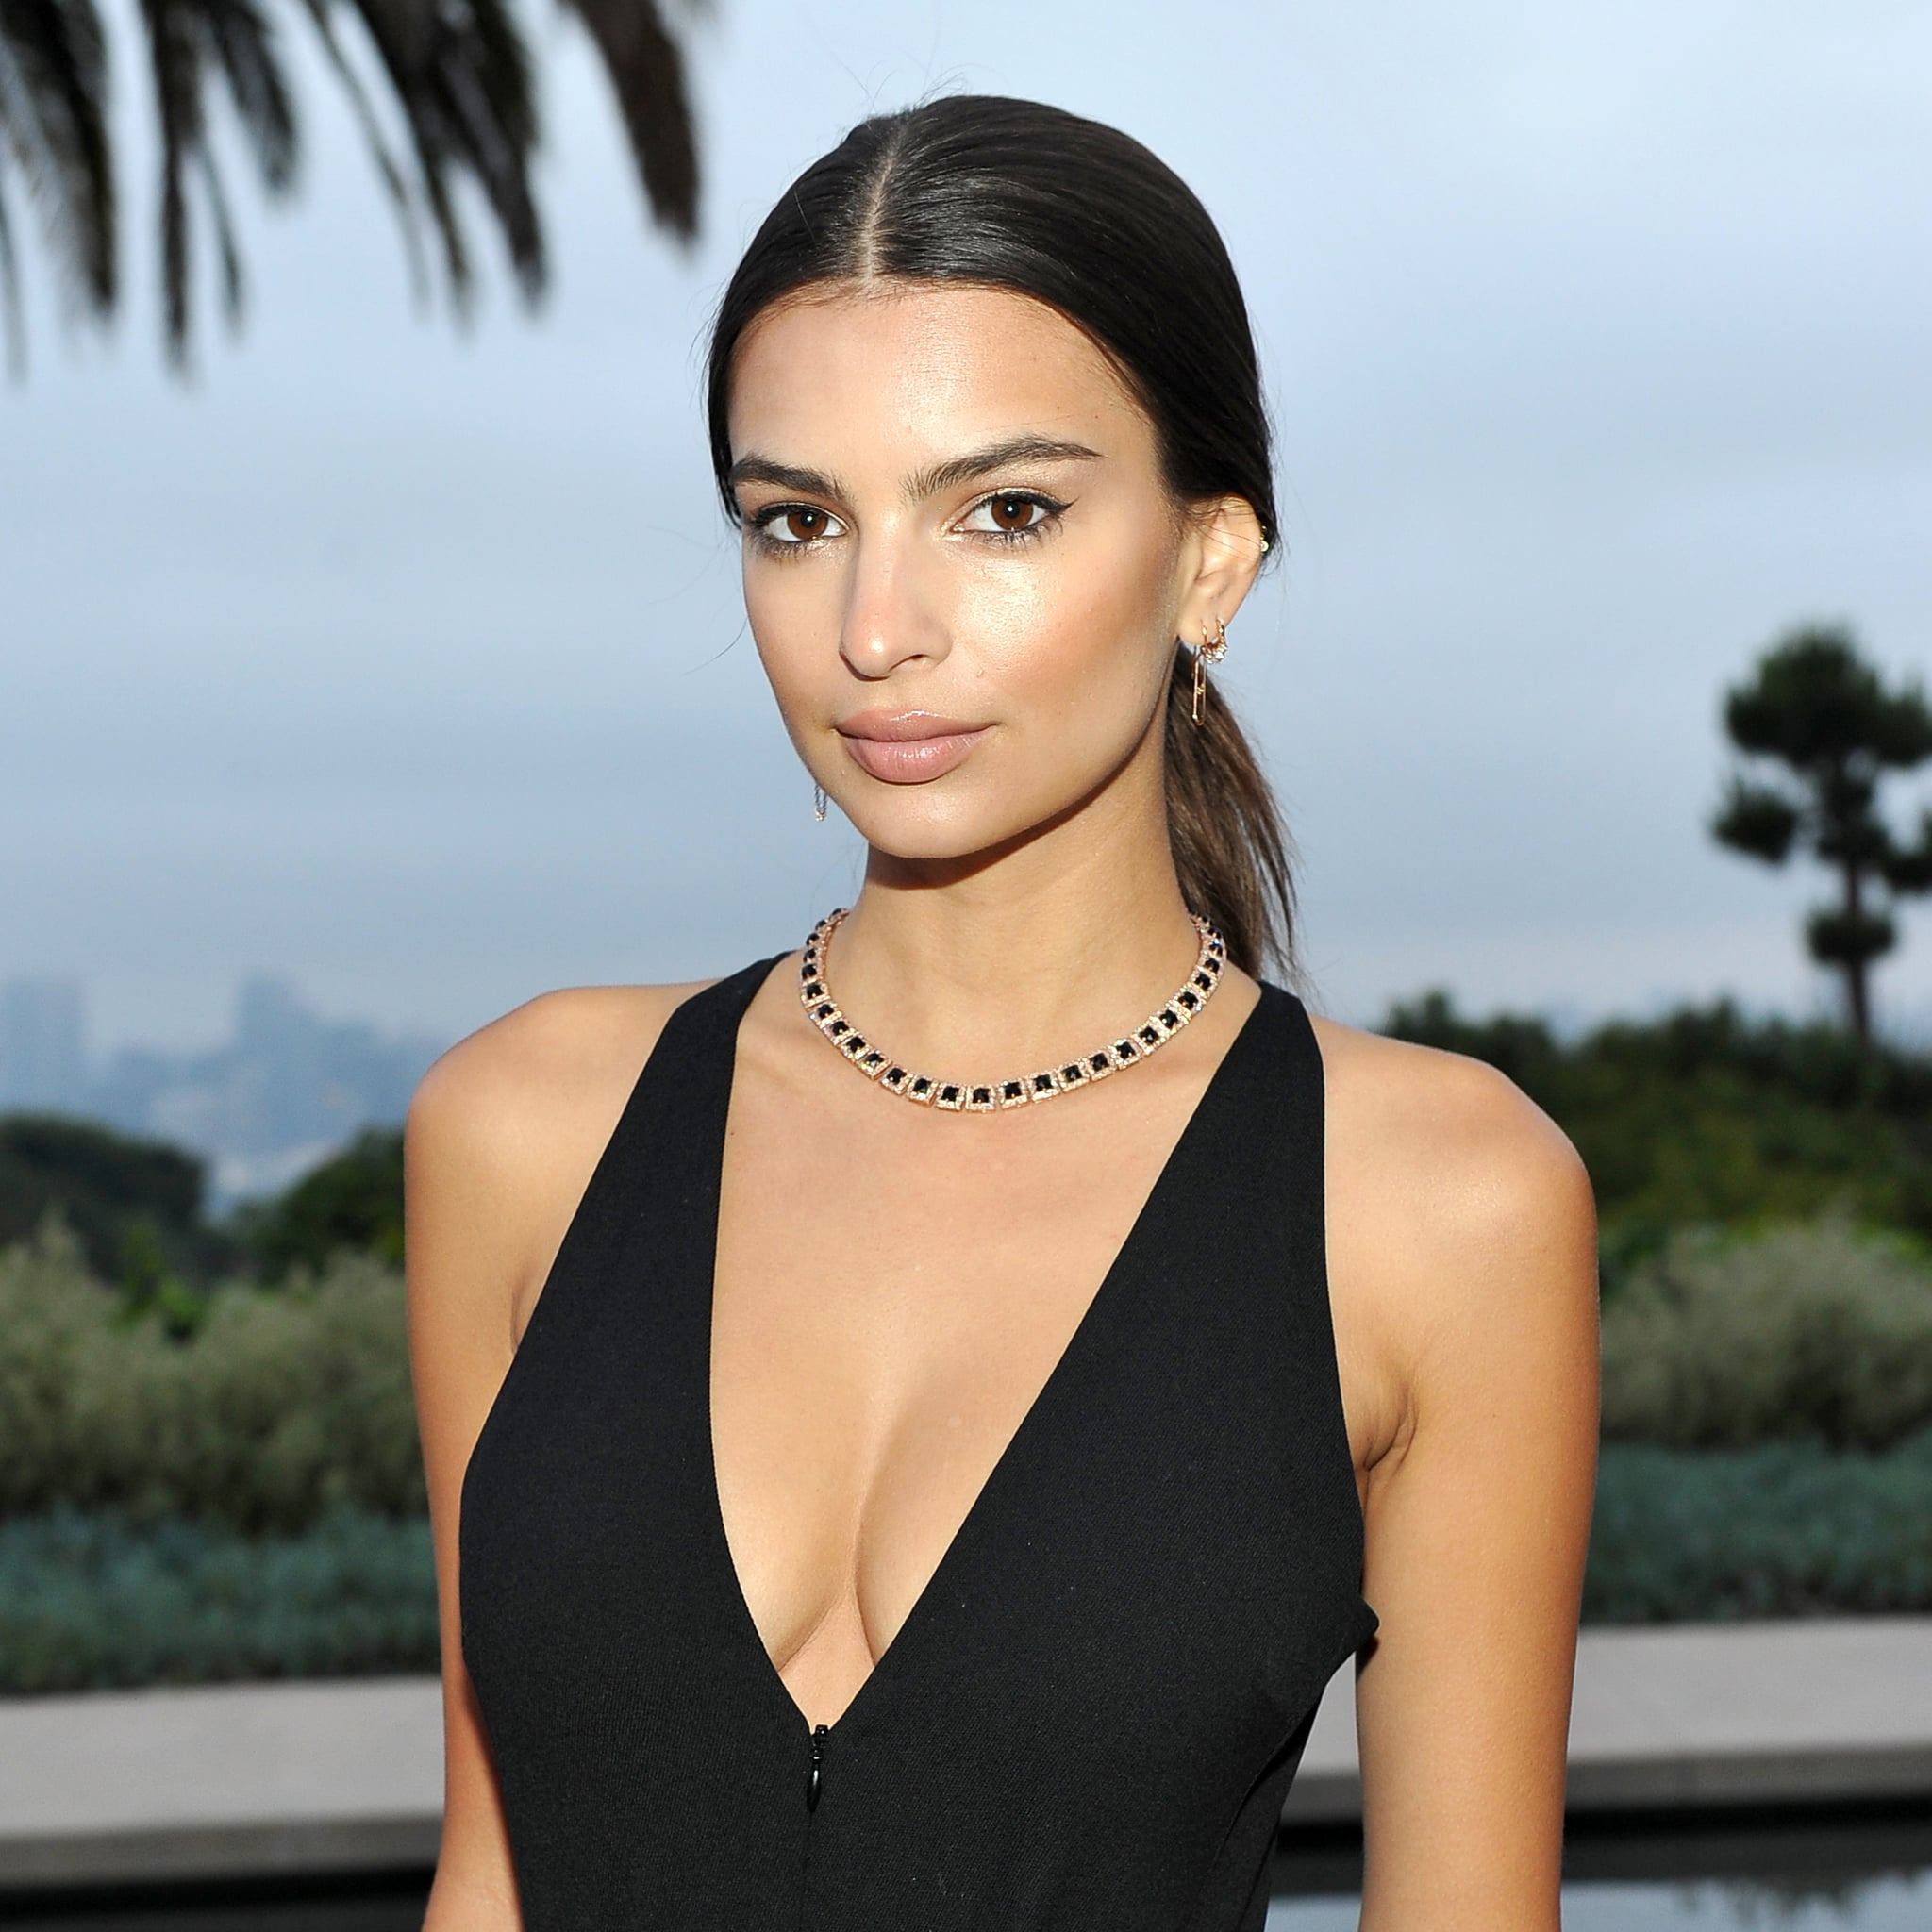 Skincare Products Emily Ratajkowski Uses